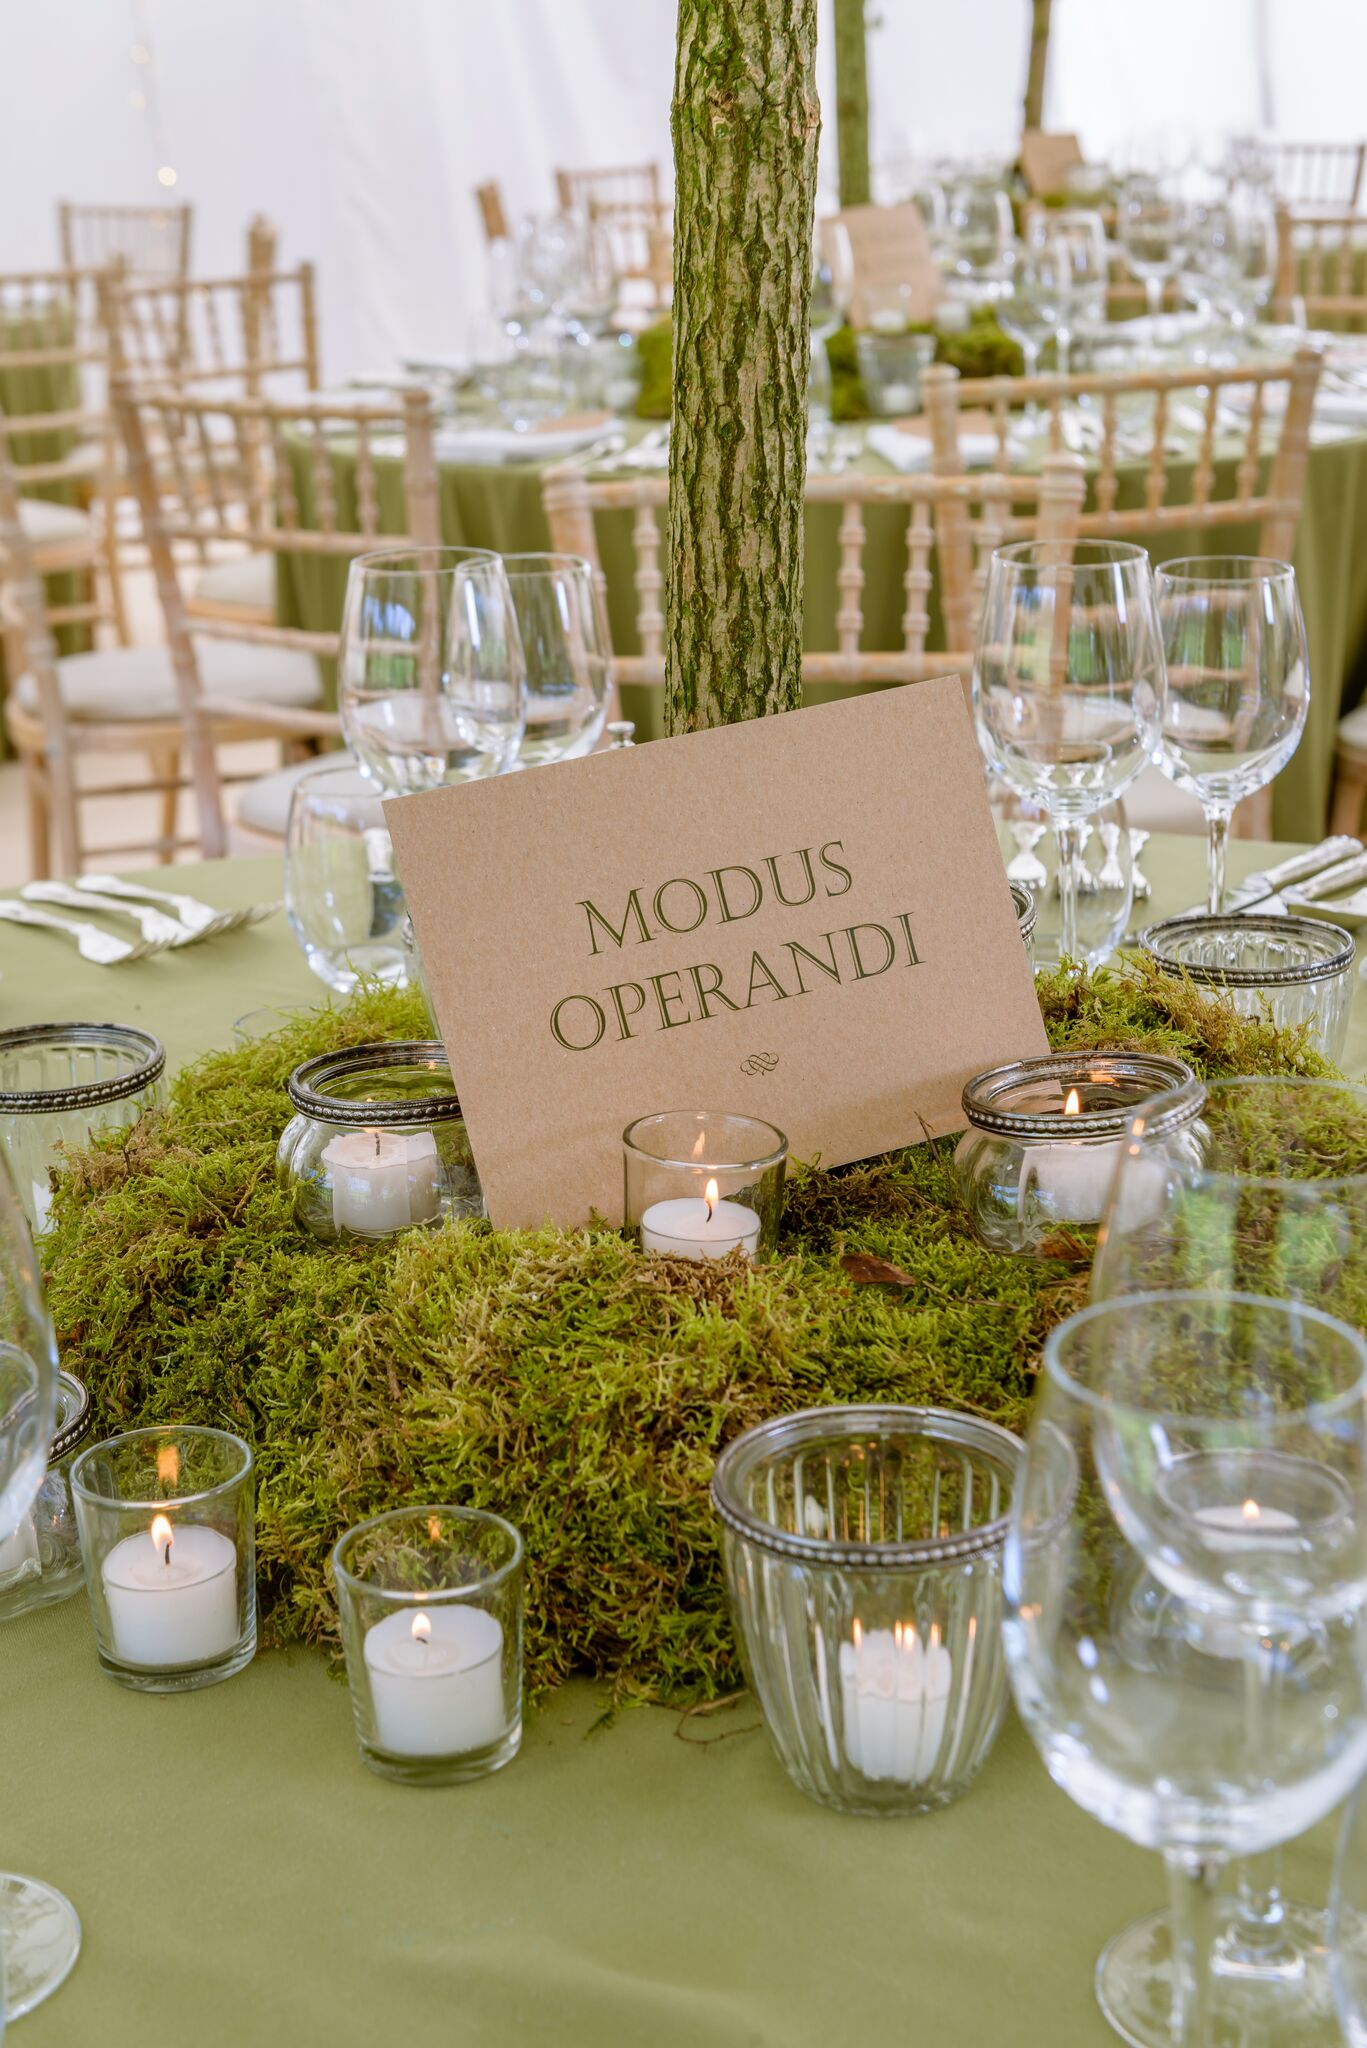 Get-Knotted Enchanted Forest theme table decor (image credit - kevingreenfield.com) (3)_preview